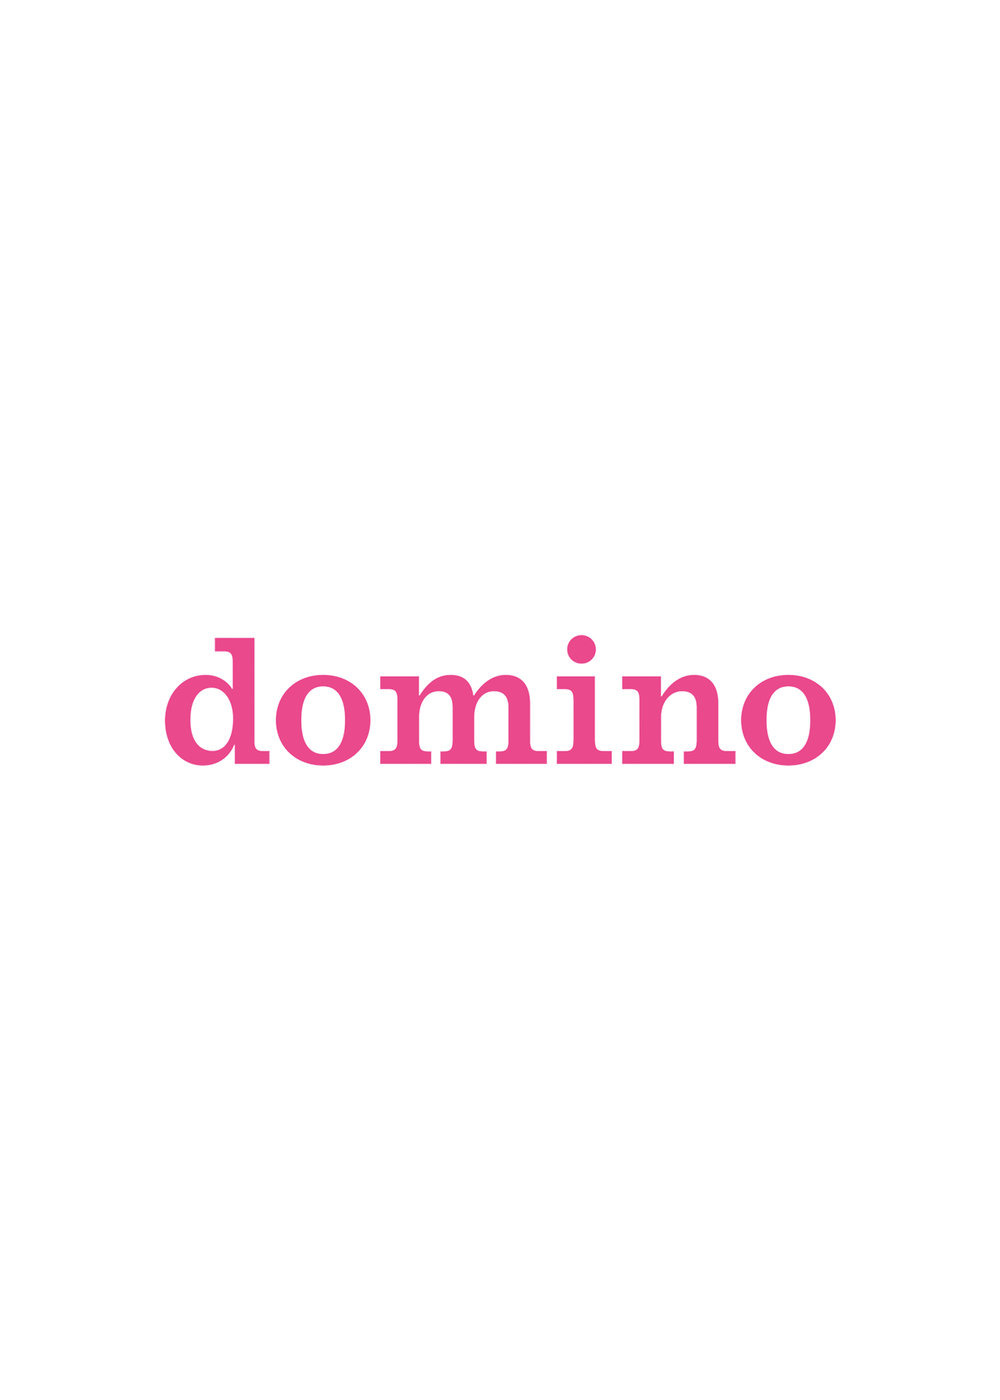 DominoLogo.jpg